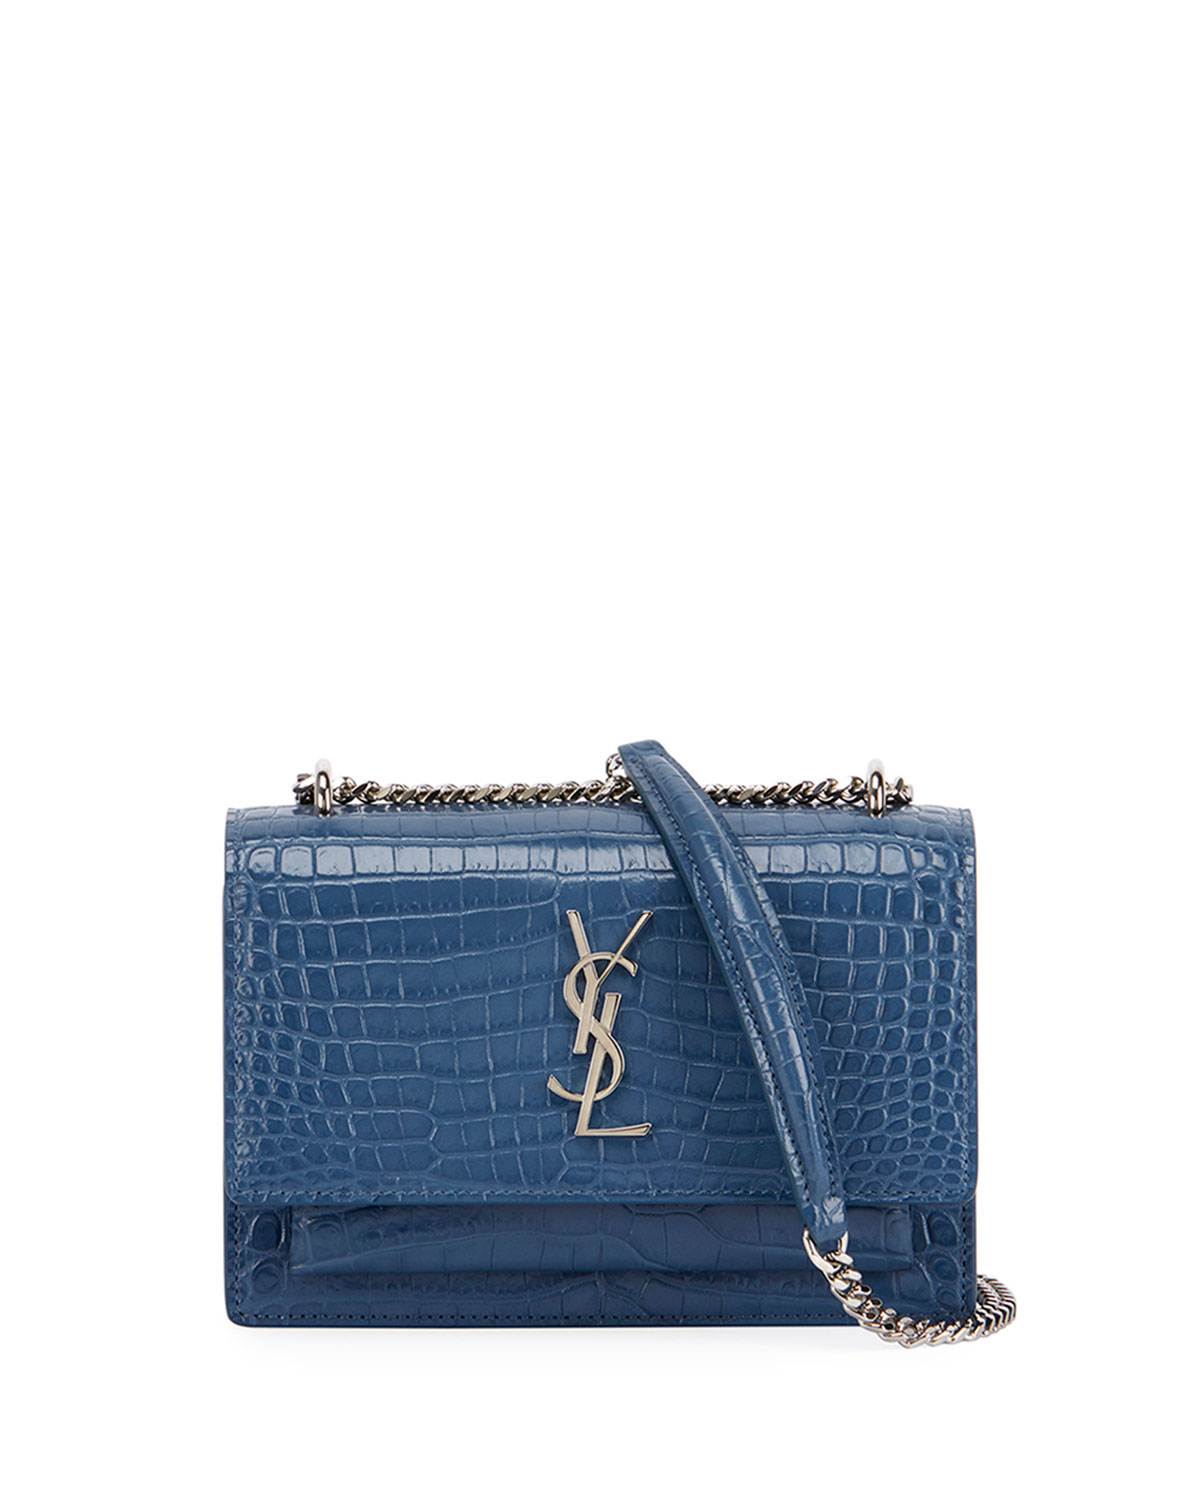 9cc8b0165a Sunset Monogram YSL Small Crocodile Embossed Wallet on Chain